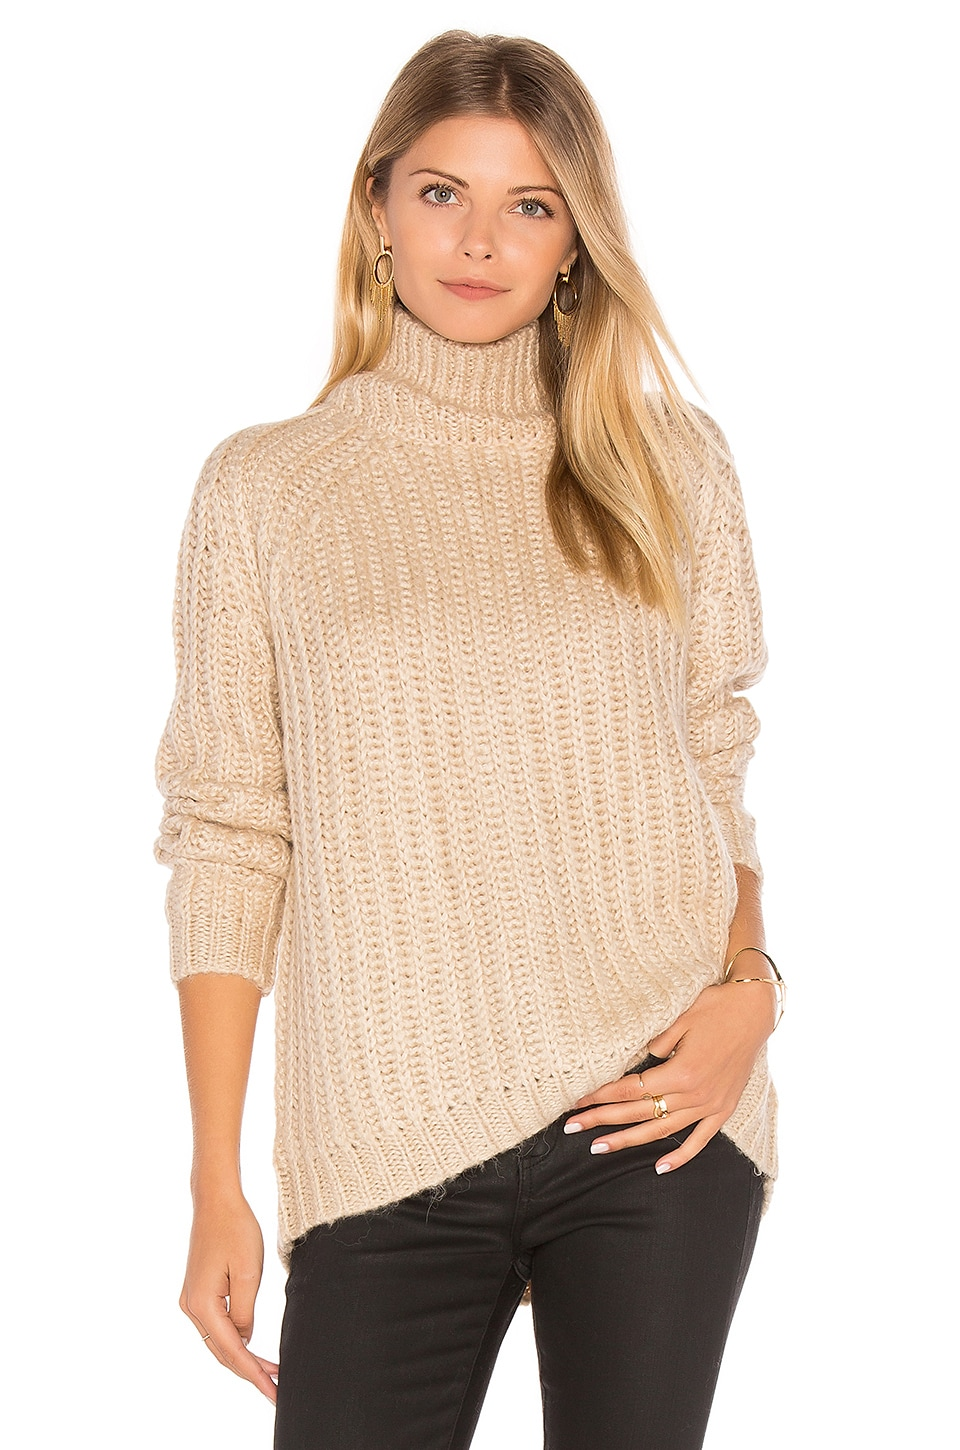 BLANKNYC Turtleneck Sweater in Afternoon Delight